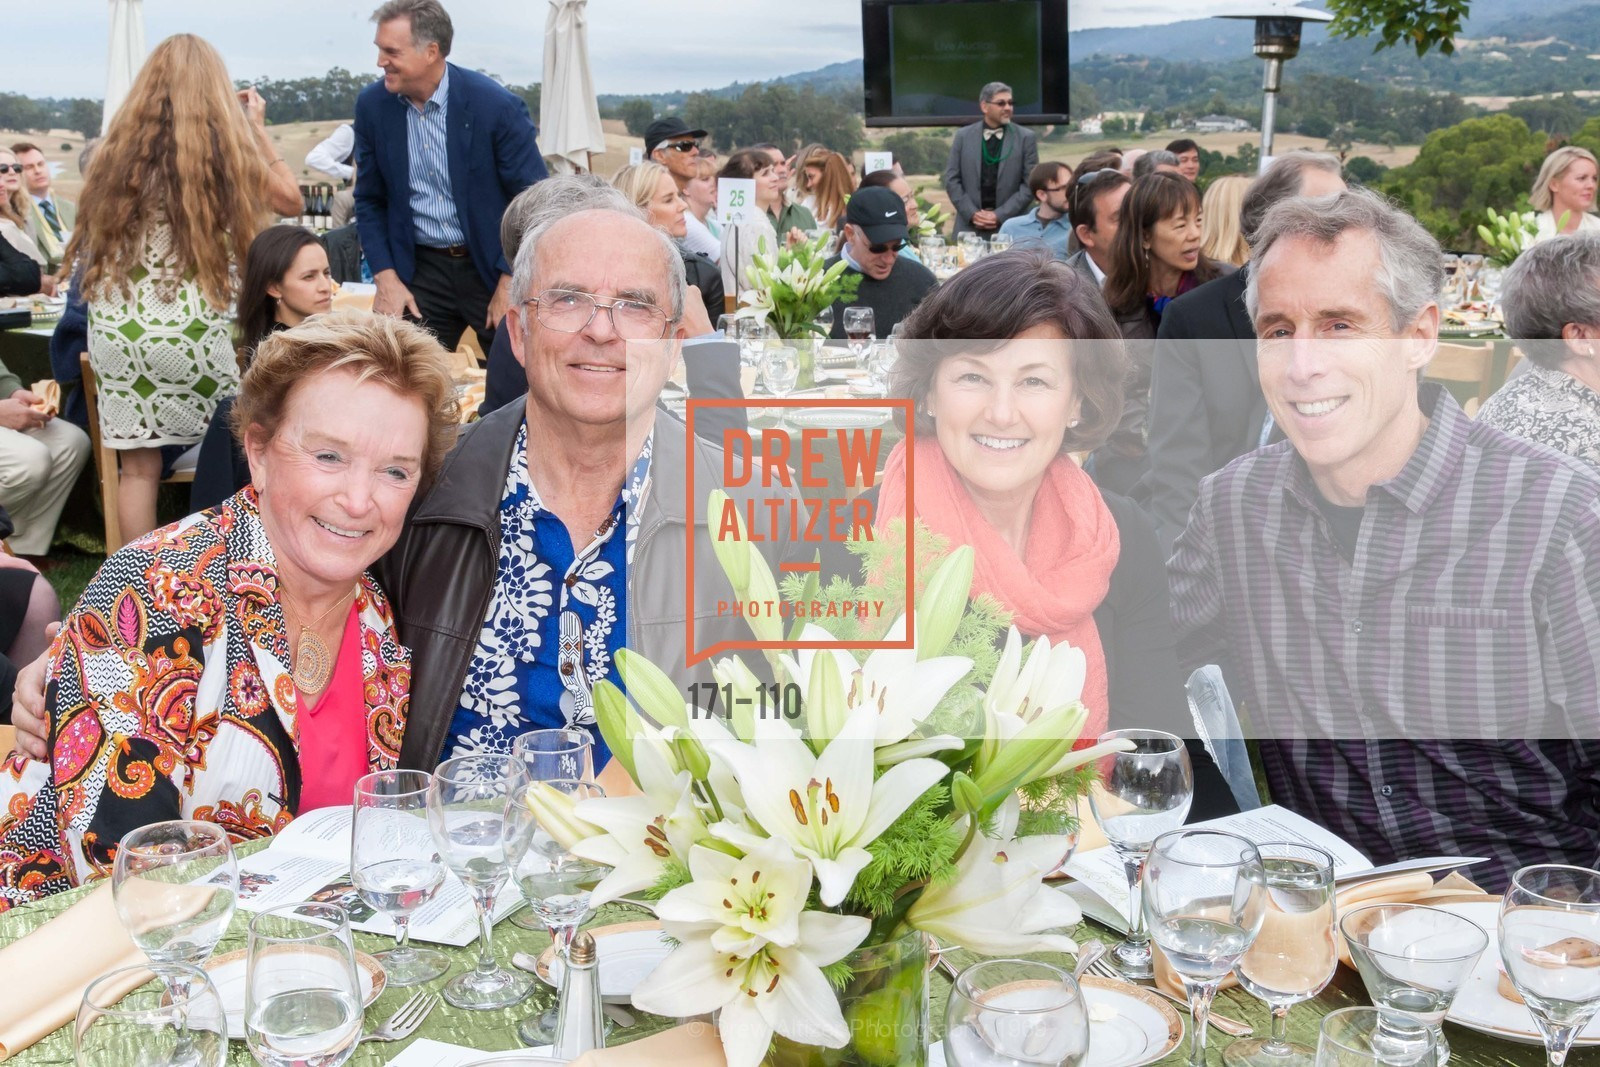 Wanda Ginner, Lance Ginner, Denise Bollinger, Clay Bollinger, LYME AID 2015 Benefiting the Bay Area Lyme Foundation, Private Residence, May 16th, 2015,Drew Altizer, Drew Altizer Photography, full-service agency, private events, San Francisco photographer, photographer california